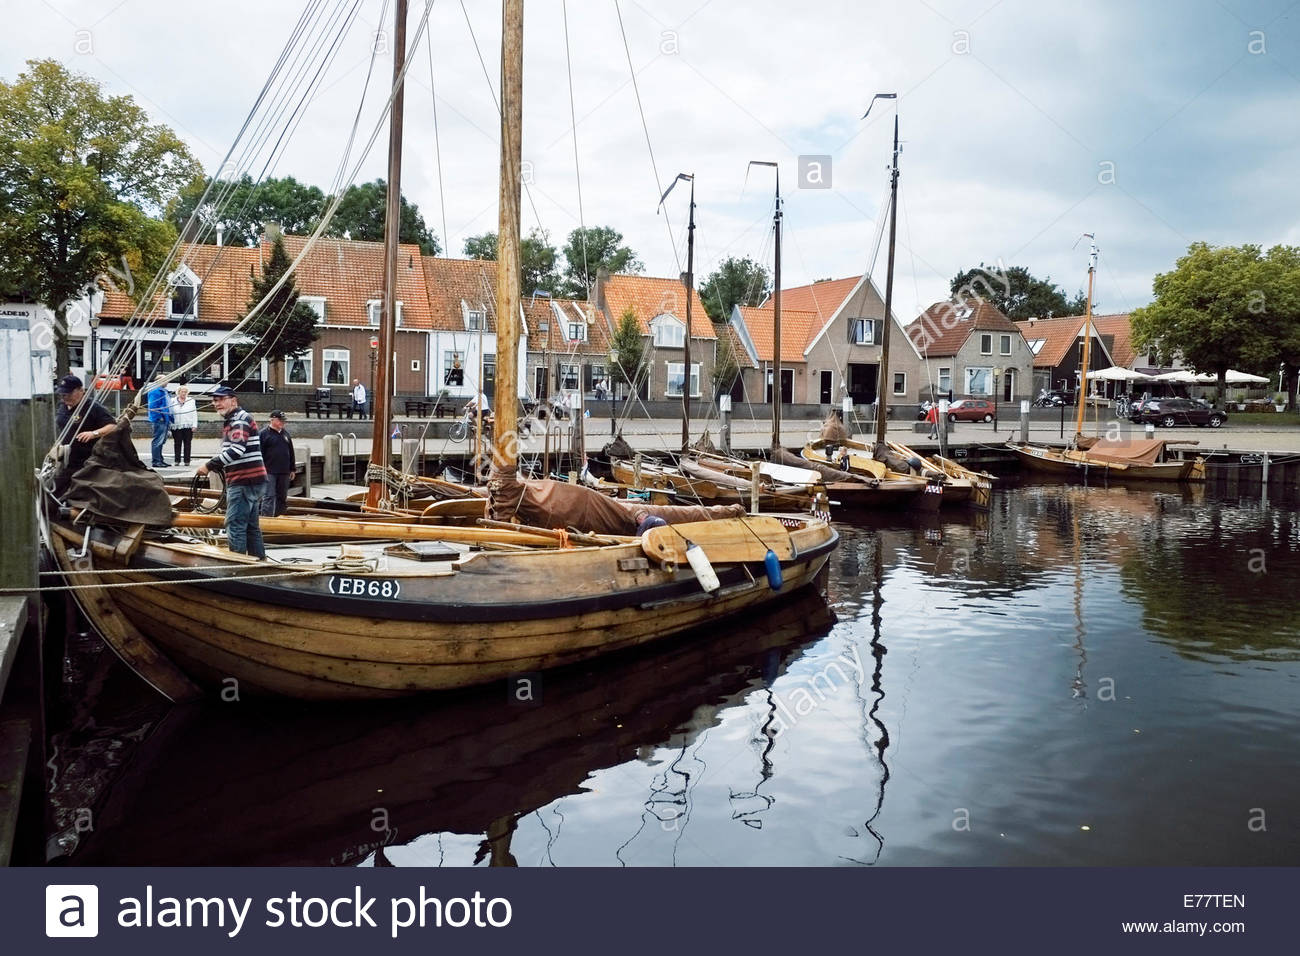 Classic wooden boats are moored in the harbor of the small city of Elburg, in the Netherlands. - Stock Image